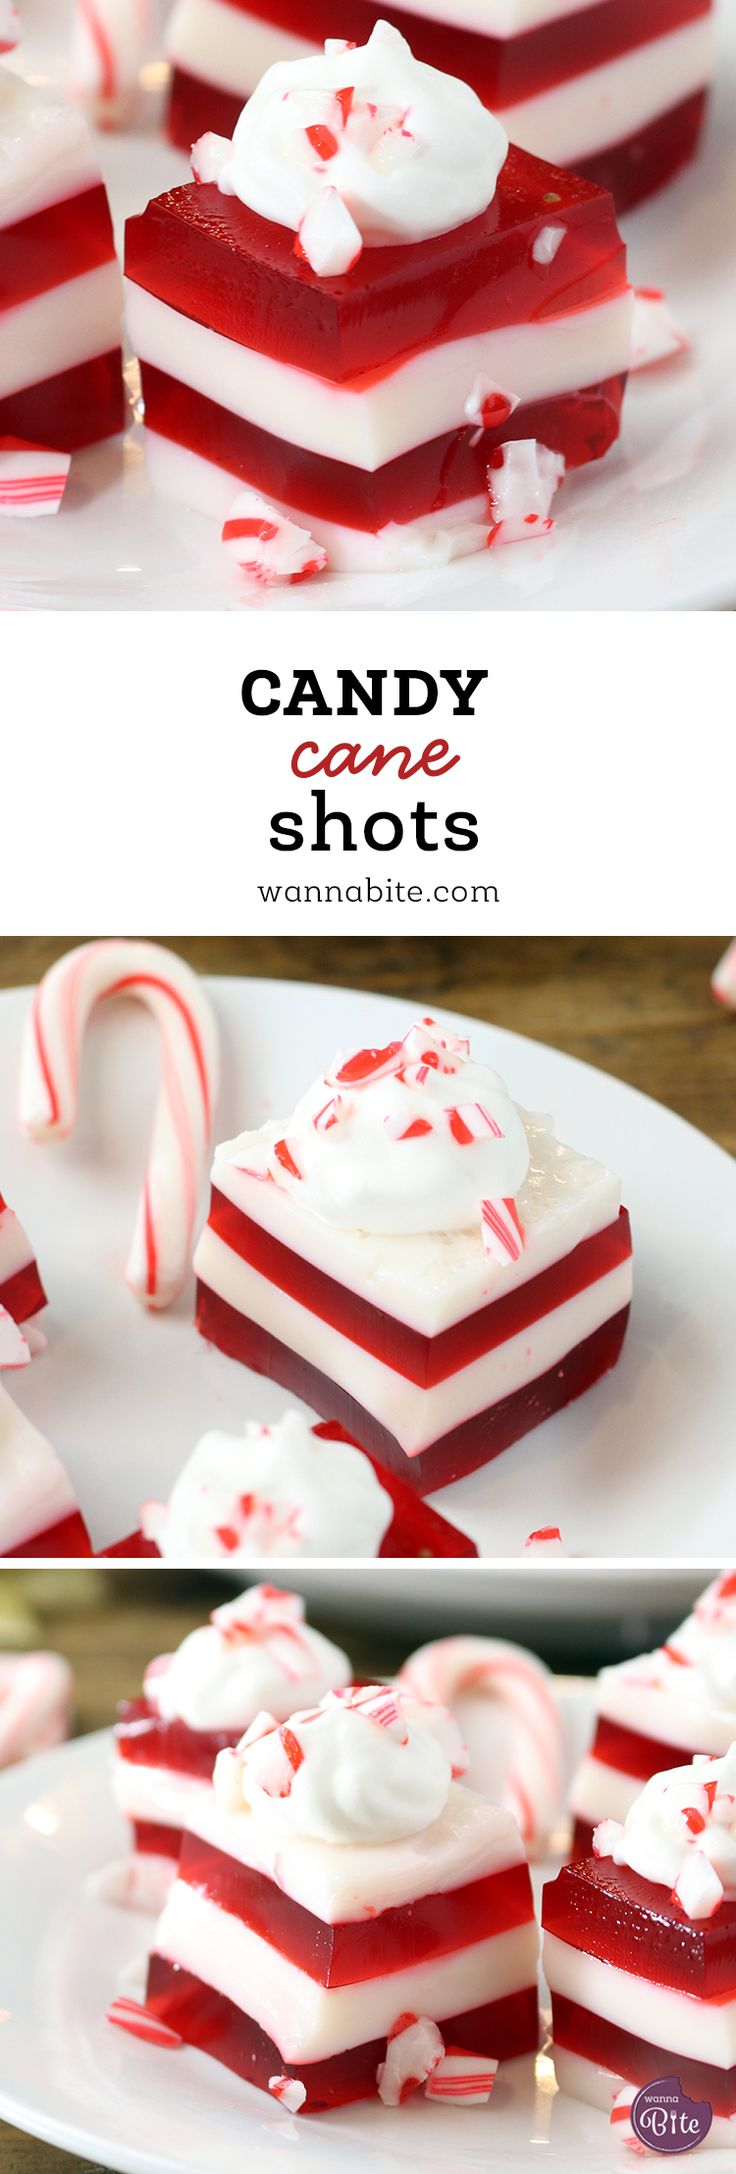 Candy cane jello shots and Chrsitmas! Get your Spirits on this Holiday! via @Wannabite